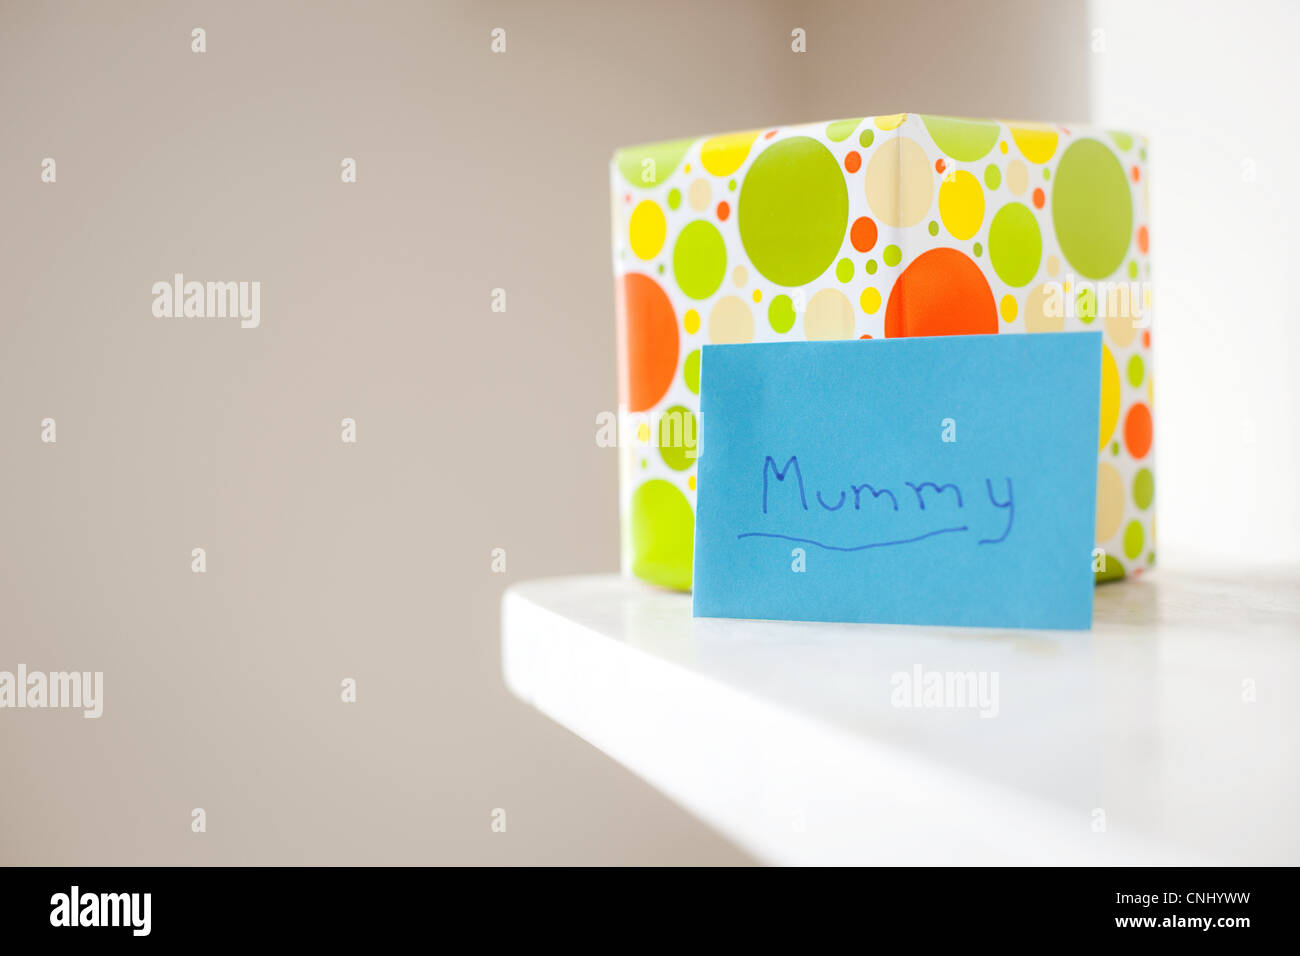 Gift and card with 'mummy' written on it - Stock Image